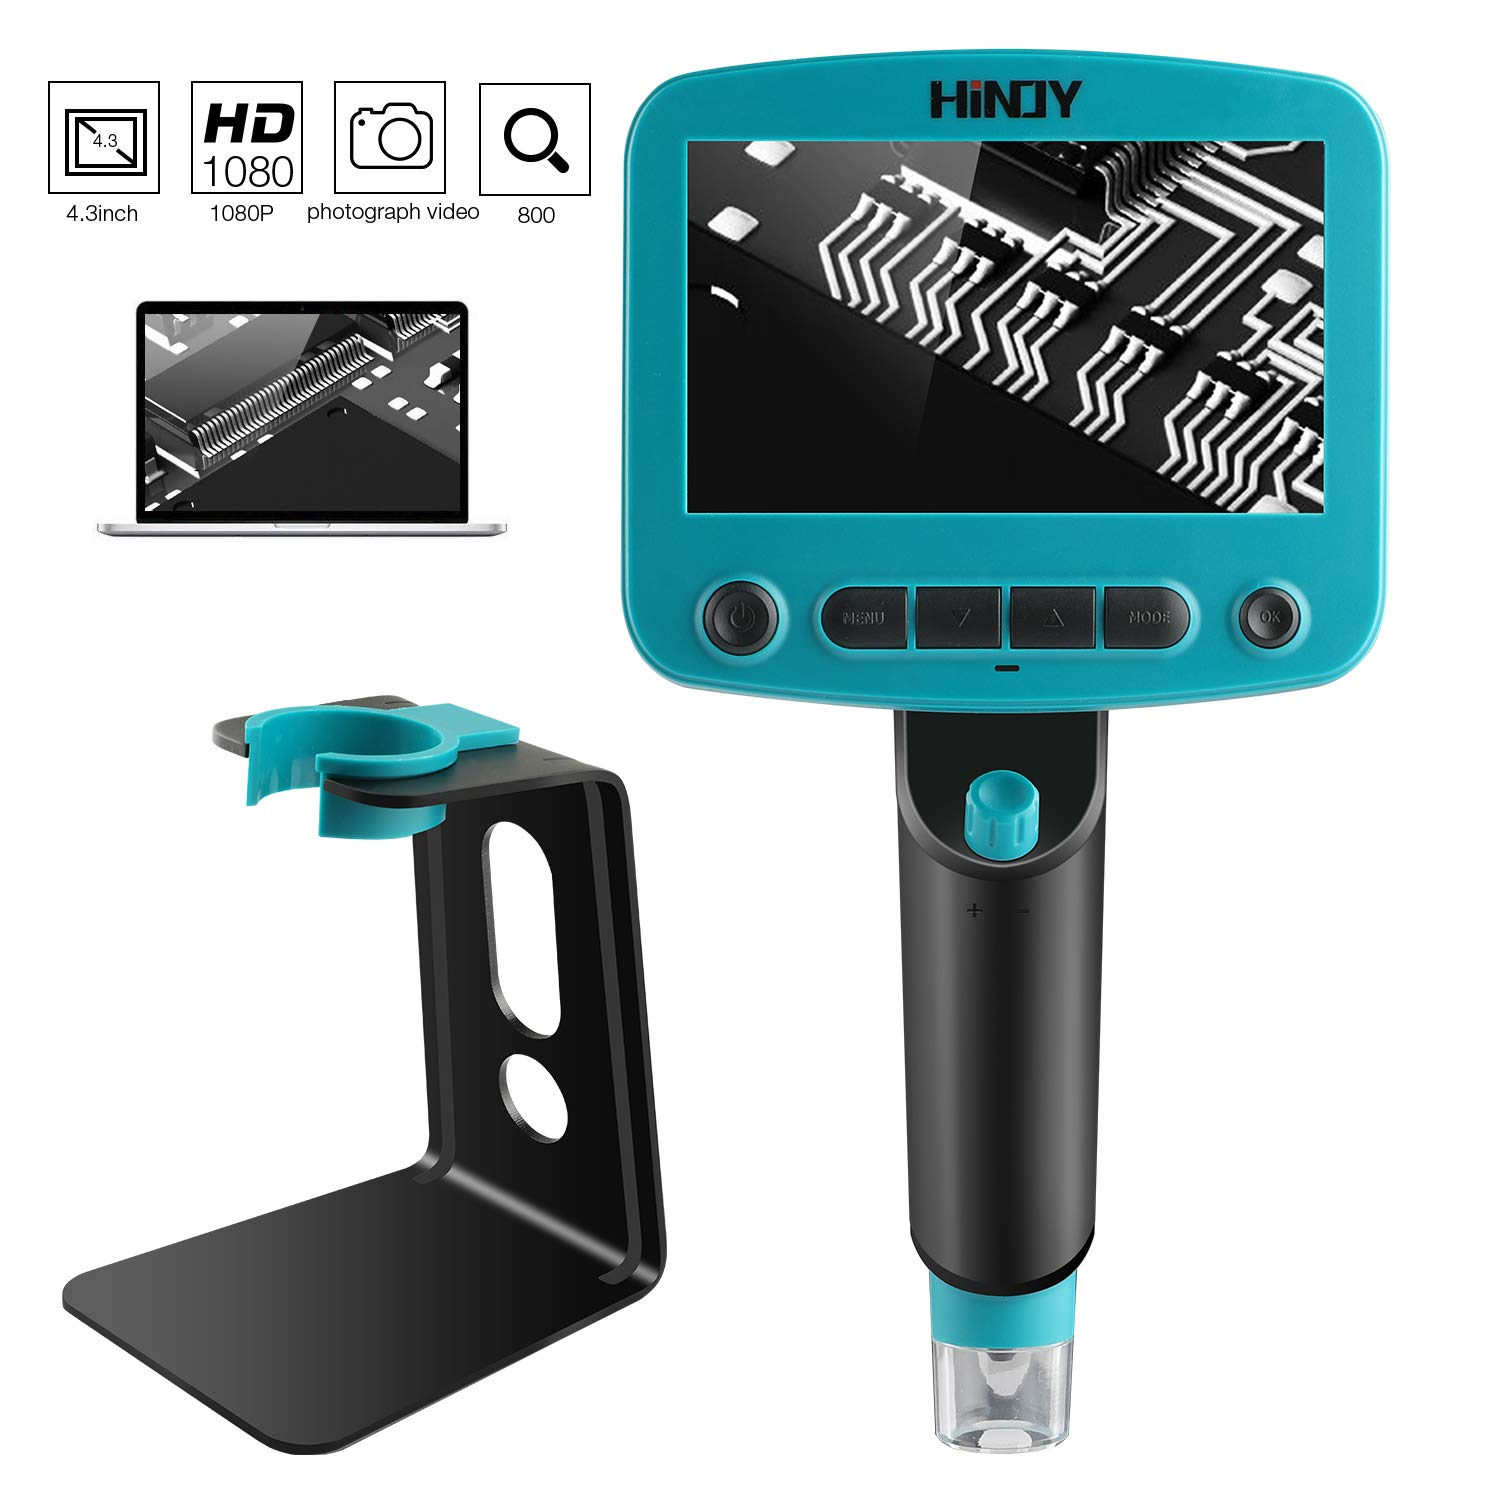 HINOY Digital Portable USB Microscope Camera, 4.3 inches HD LCD 1x to 800x Magnifier Zoom 5Mpix Wireless Microscope with 8 Adjustable LED Lights Inspection Photograph Video Camera Handheld Microscope by HINOY